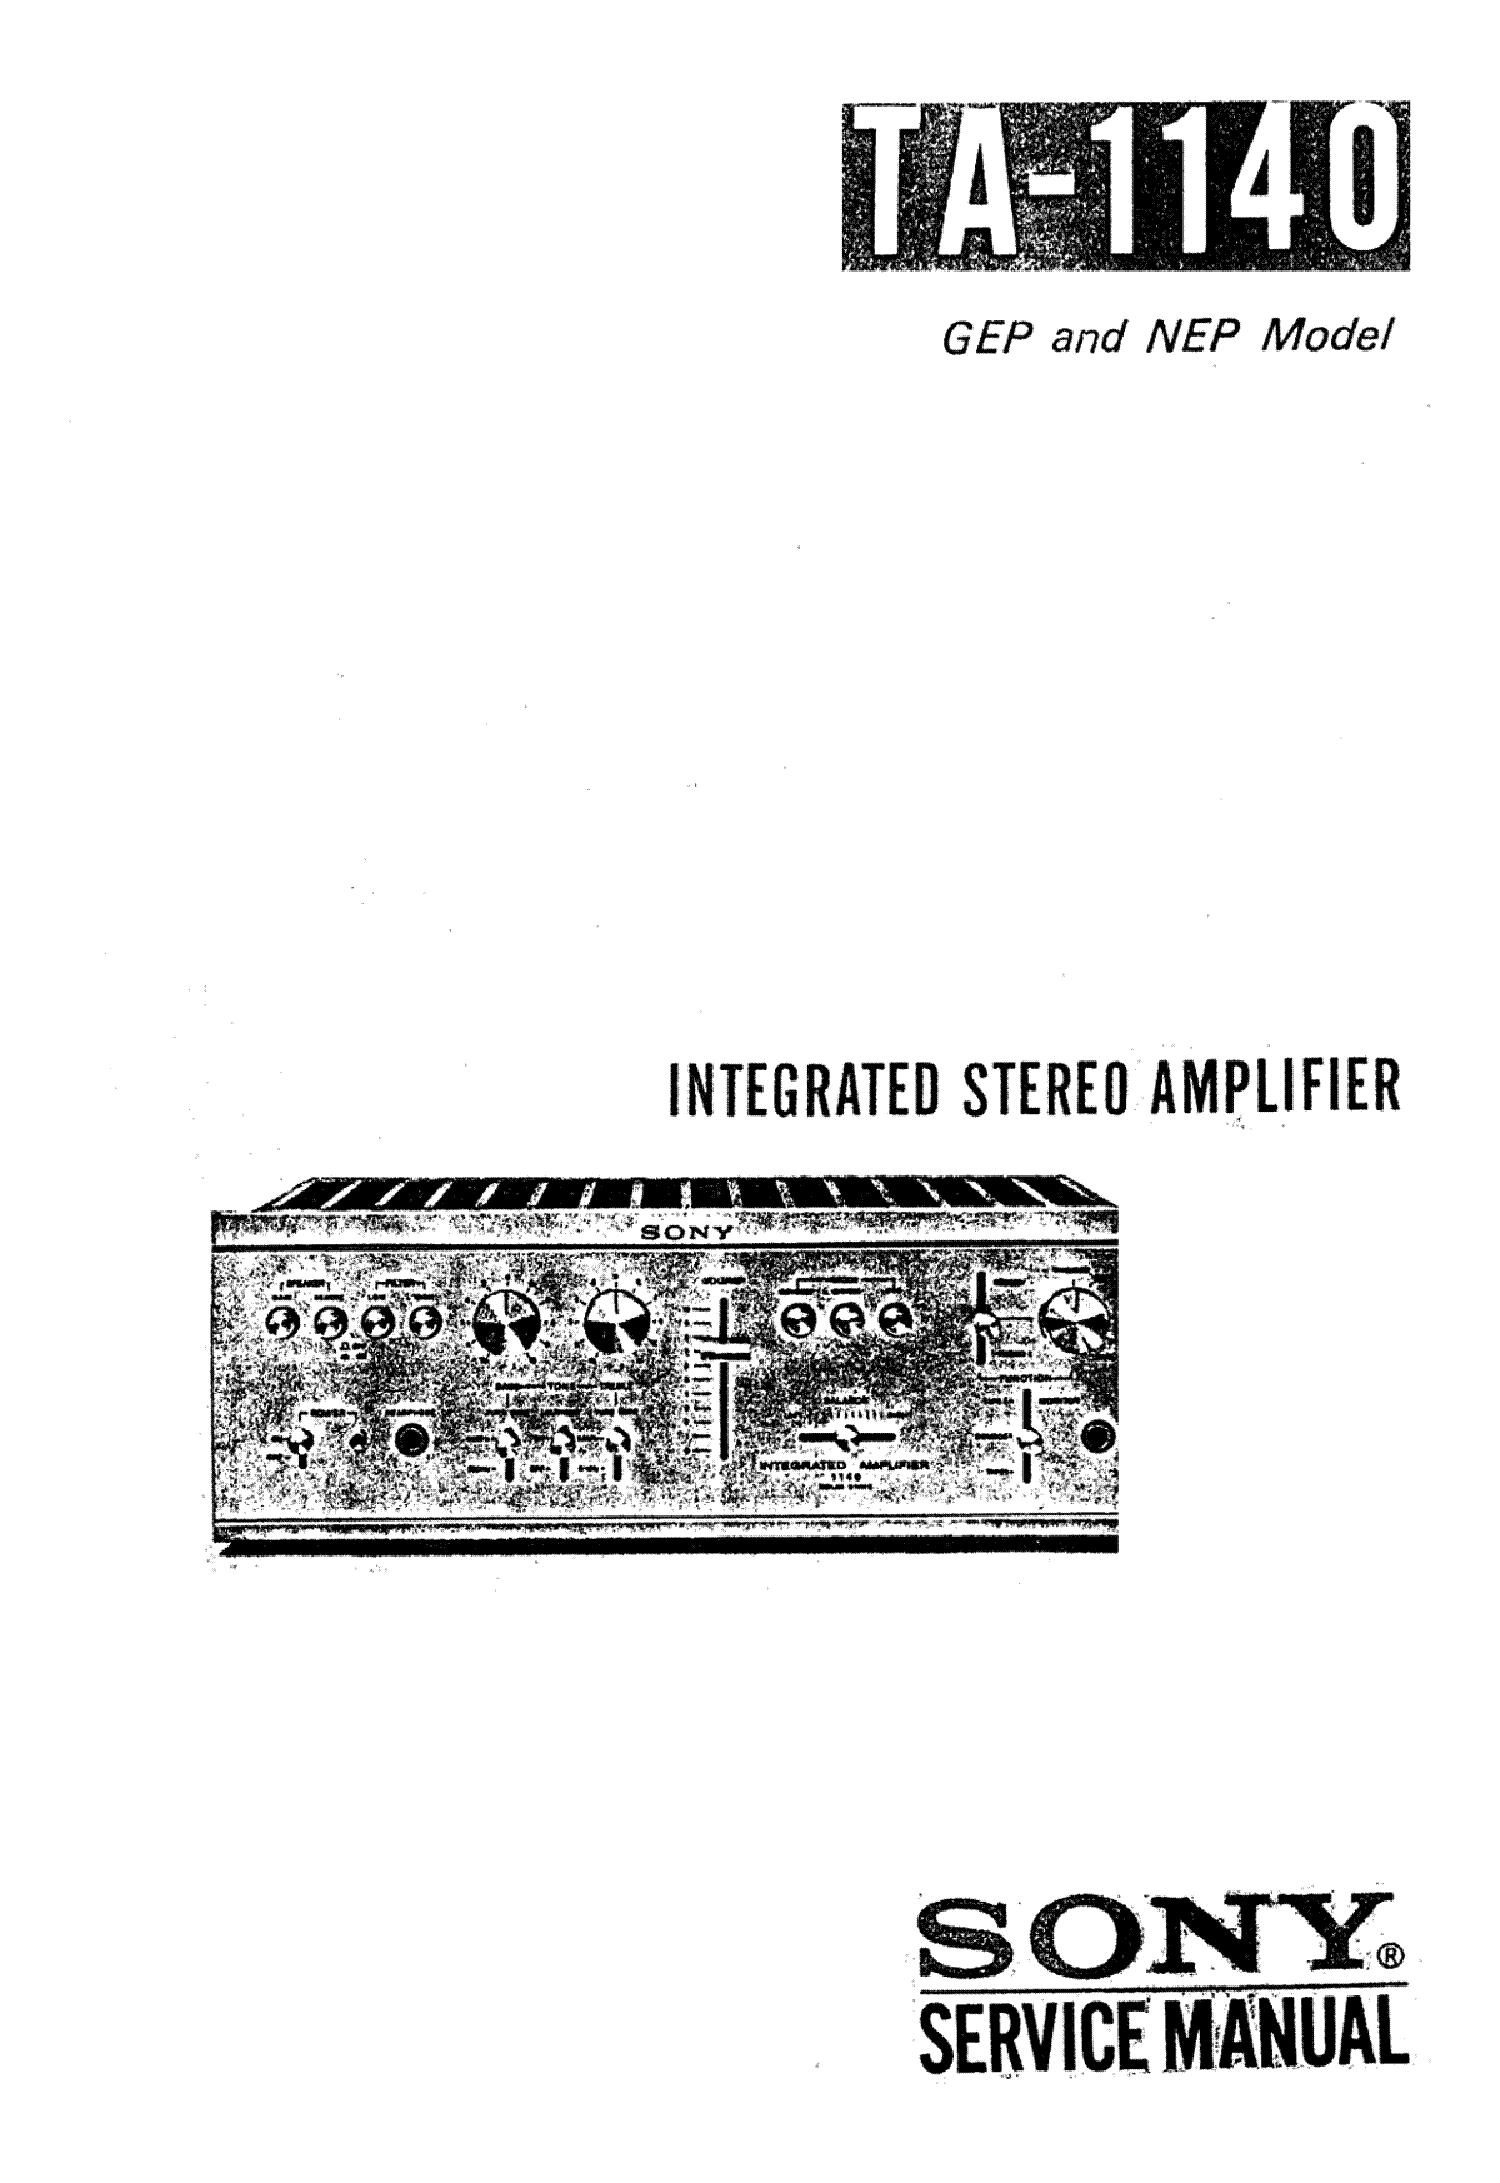 SONY TA-1140 INTEGRATED STEREO AMPLIFIER Service Manual